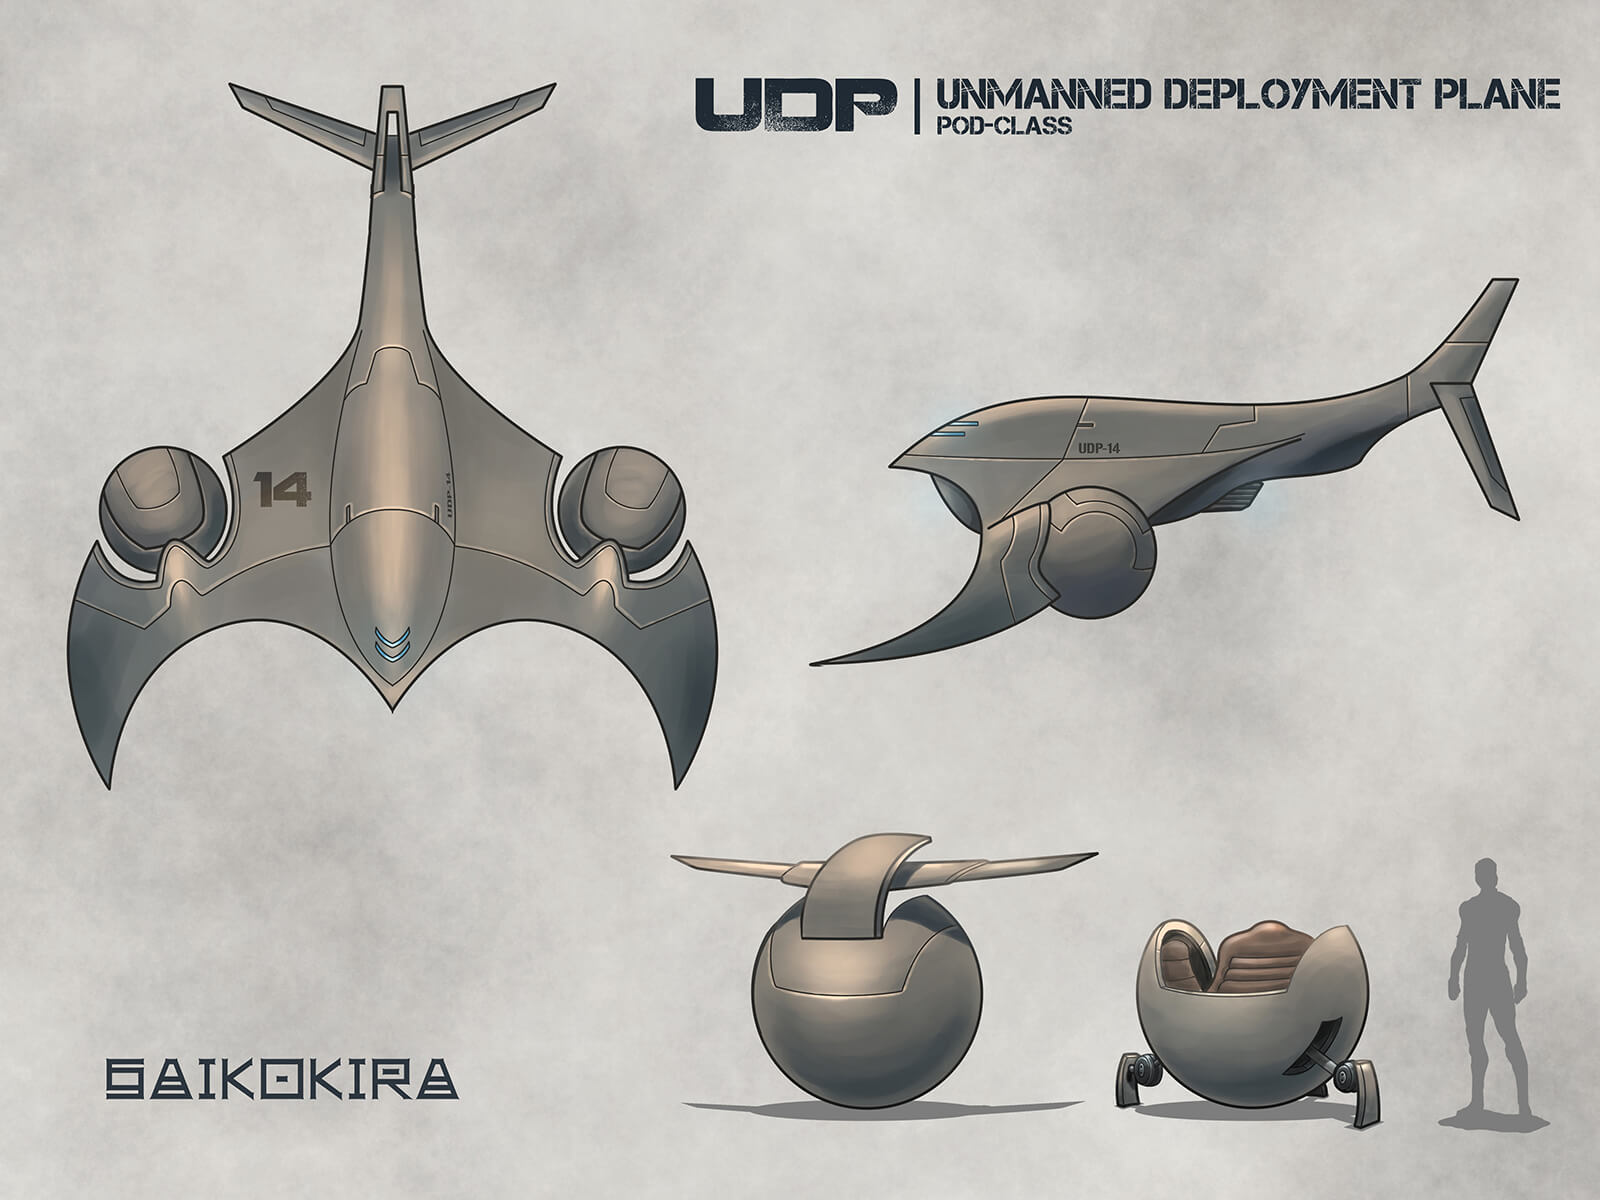 Sketch of a futuristic gray-metal flying vehicle, including spherical pods meant to detach holding a single occupant.